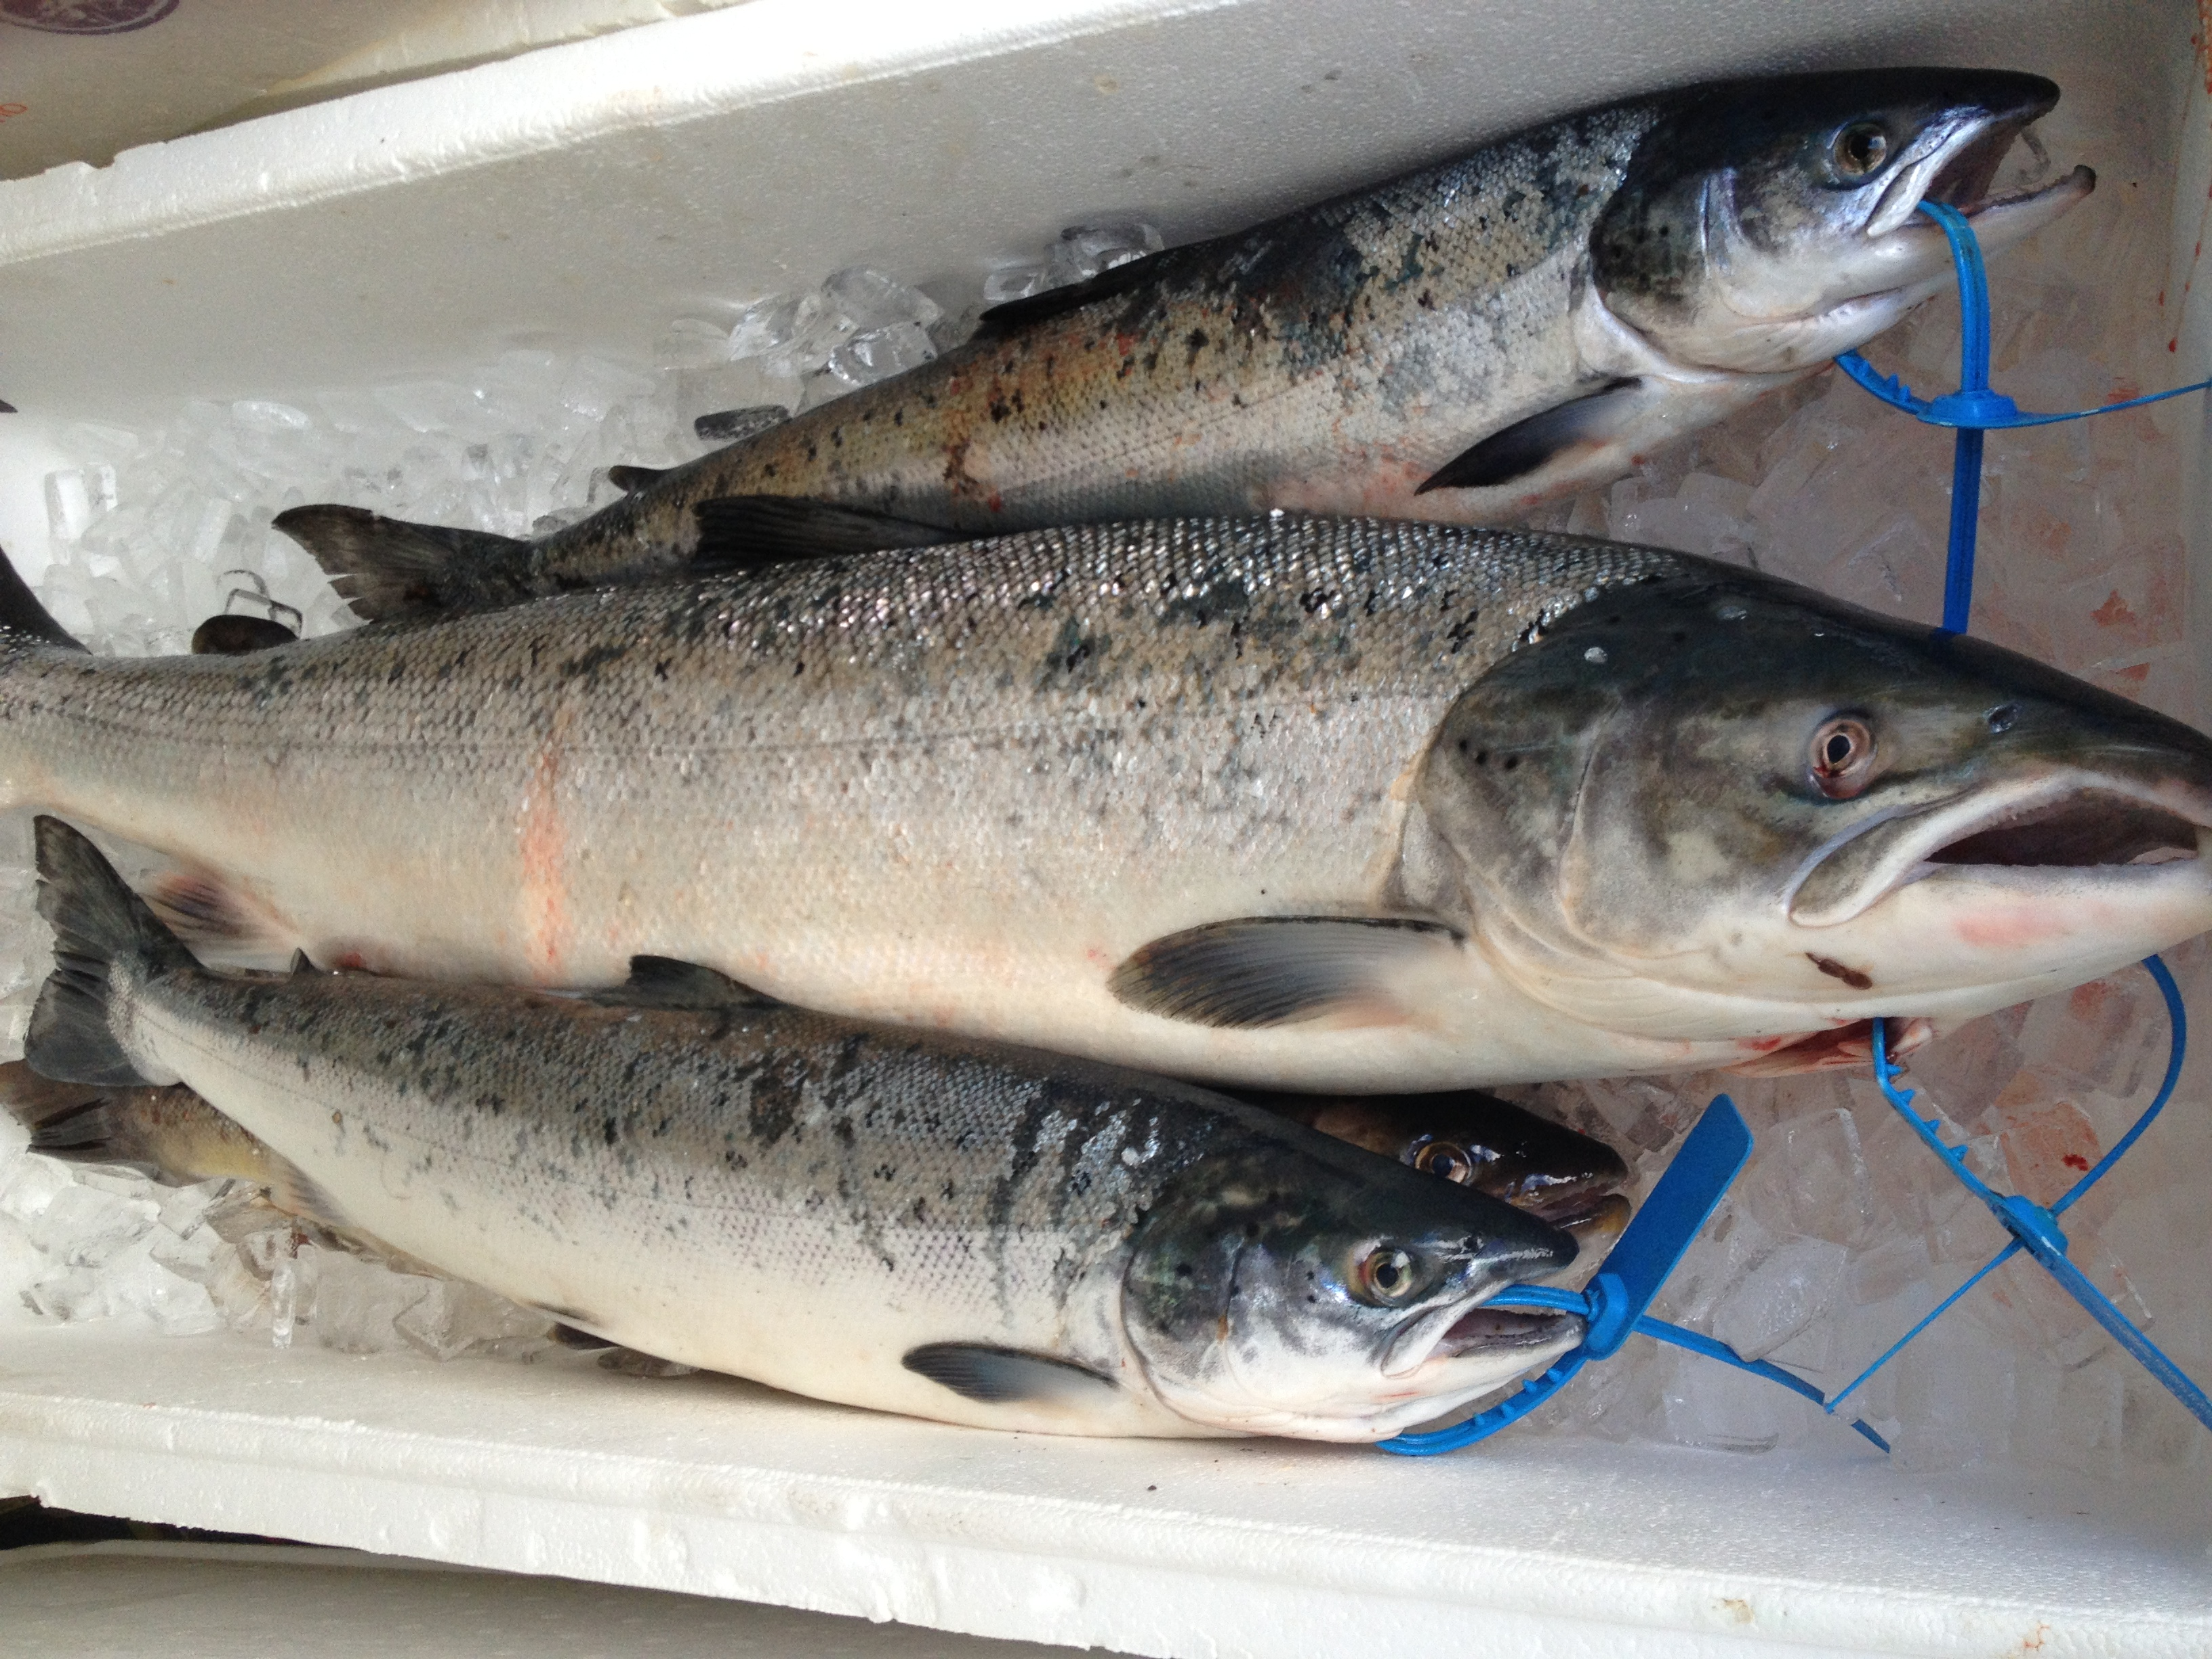 Solway firth wild salmon